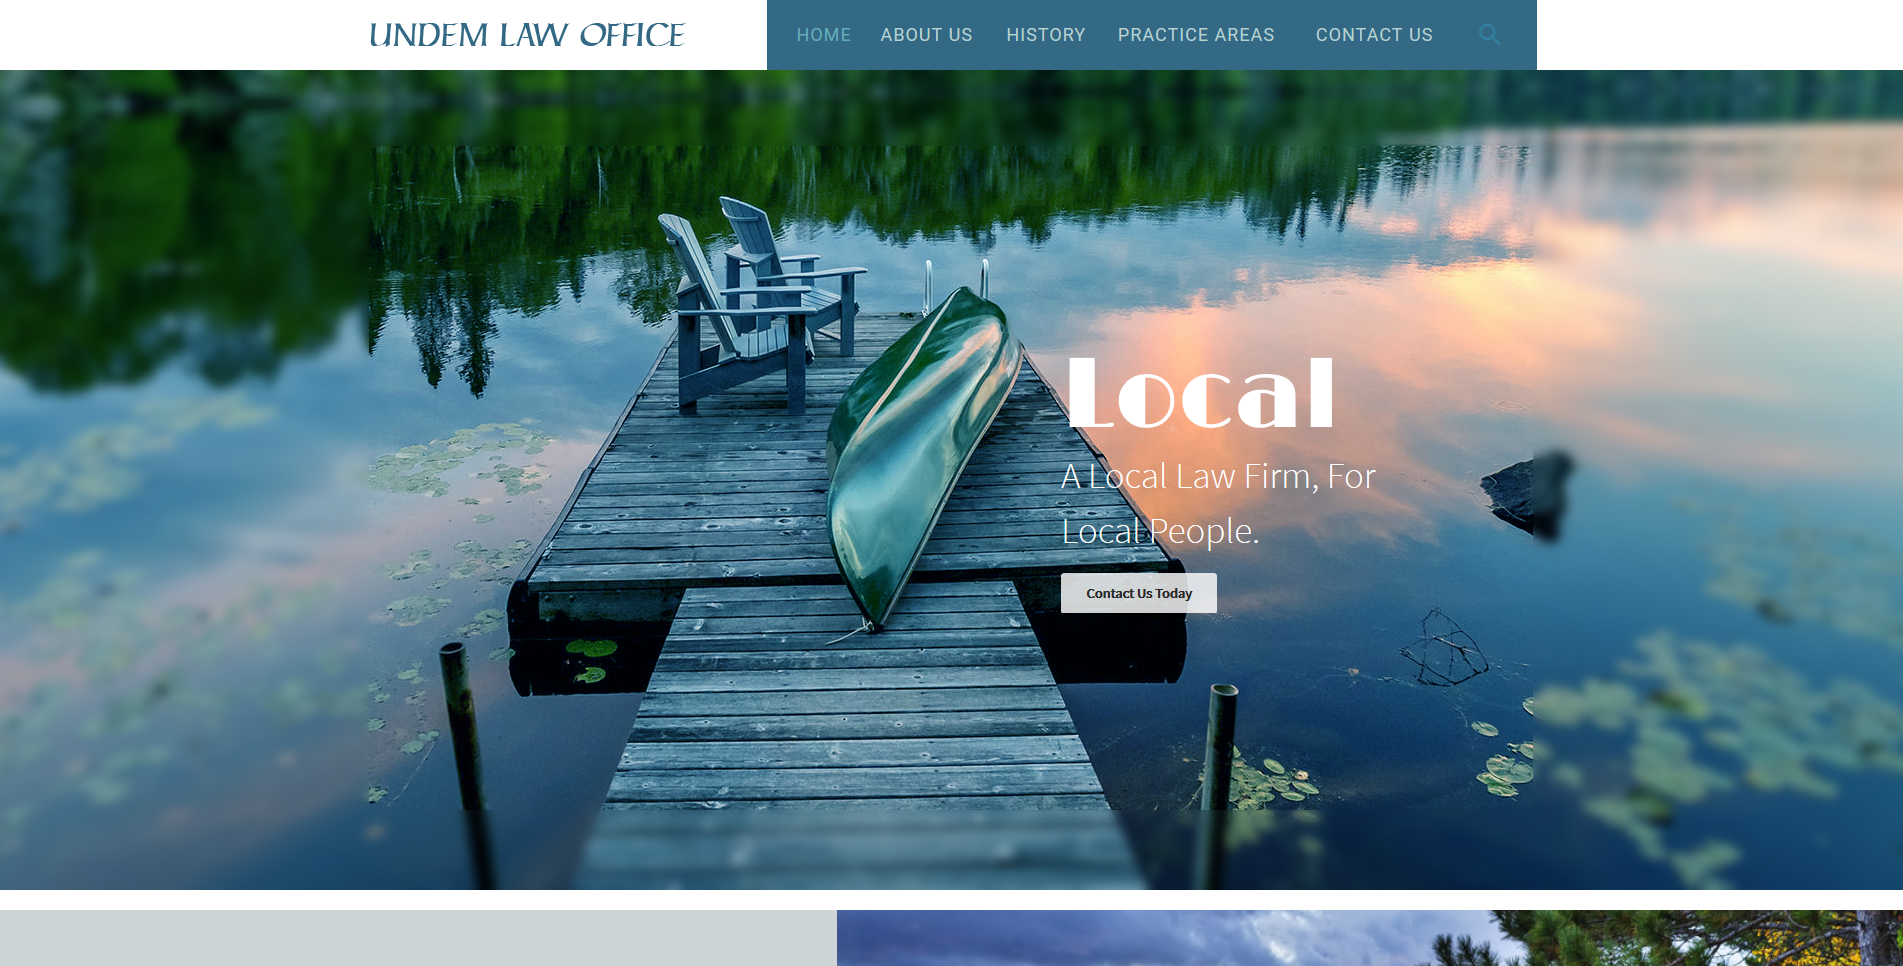 Law Office Web Design by Big Groovy Designs